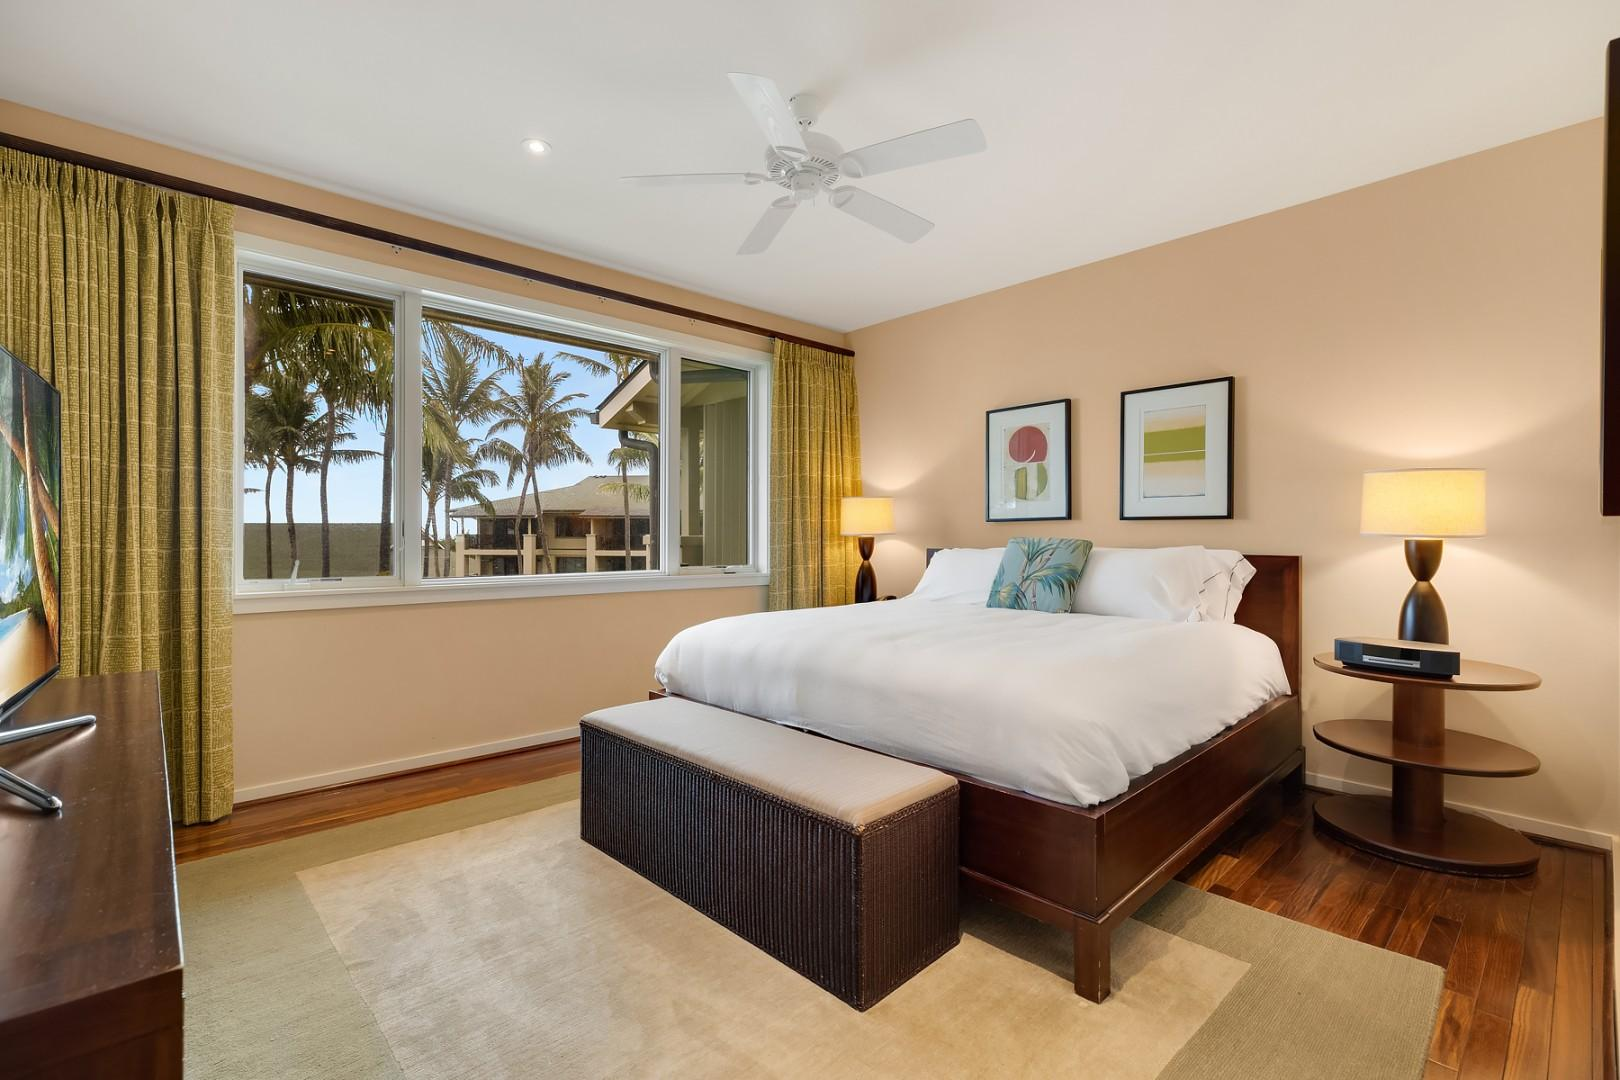 Master bedroom with views of the beach and beyond